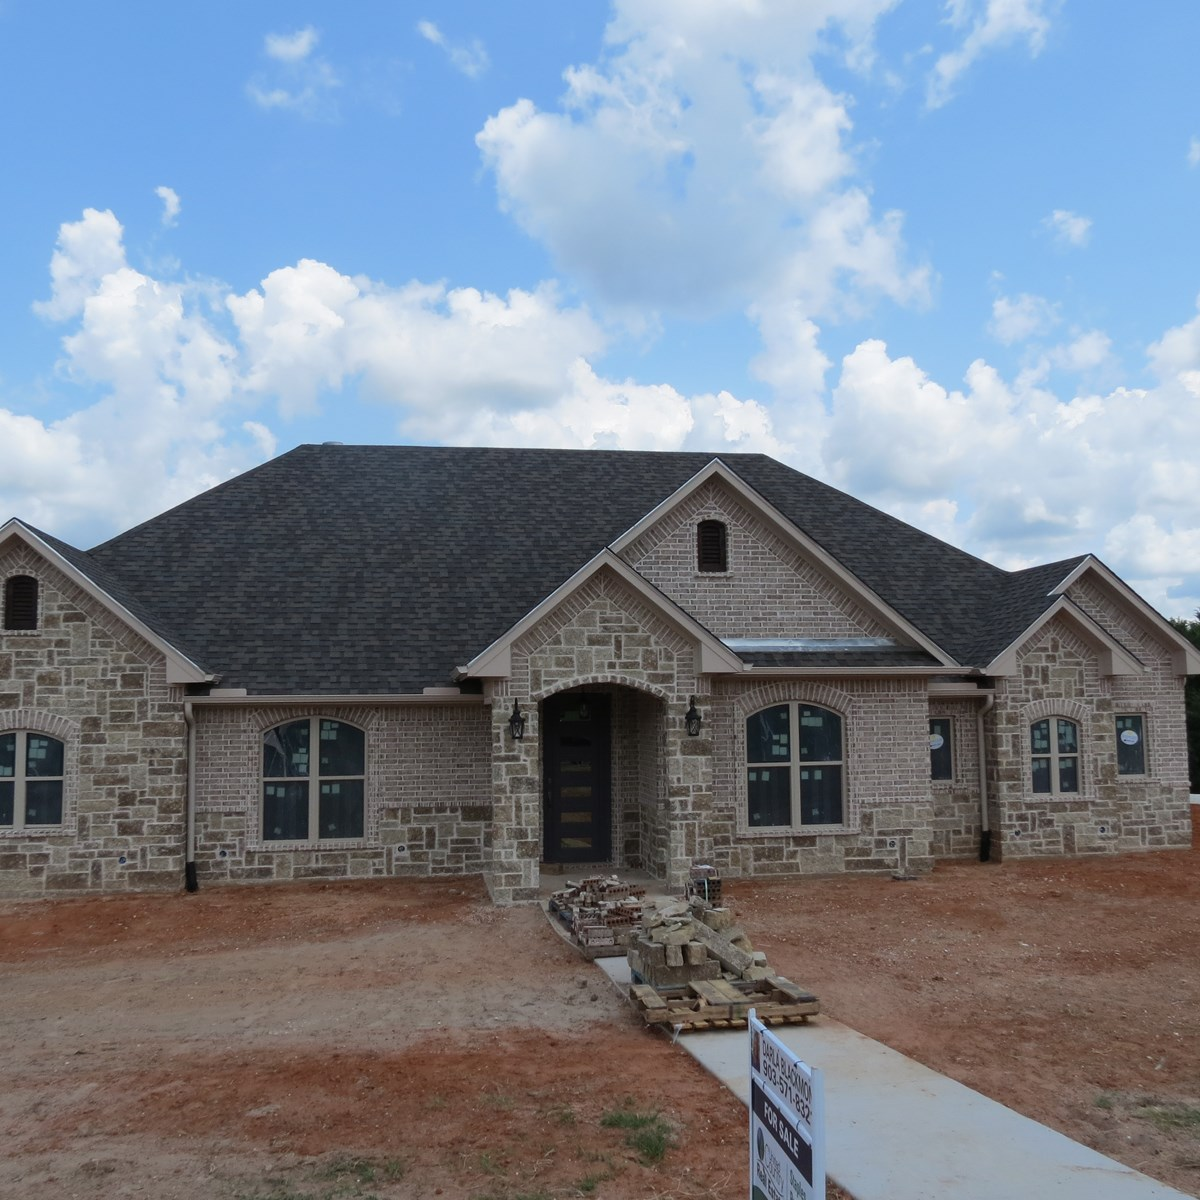 NEW CONSTRUCTION HOME LINDALE ISD DOVE RIDGE SUBDIVISION